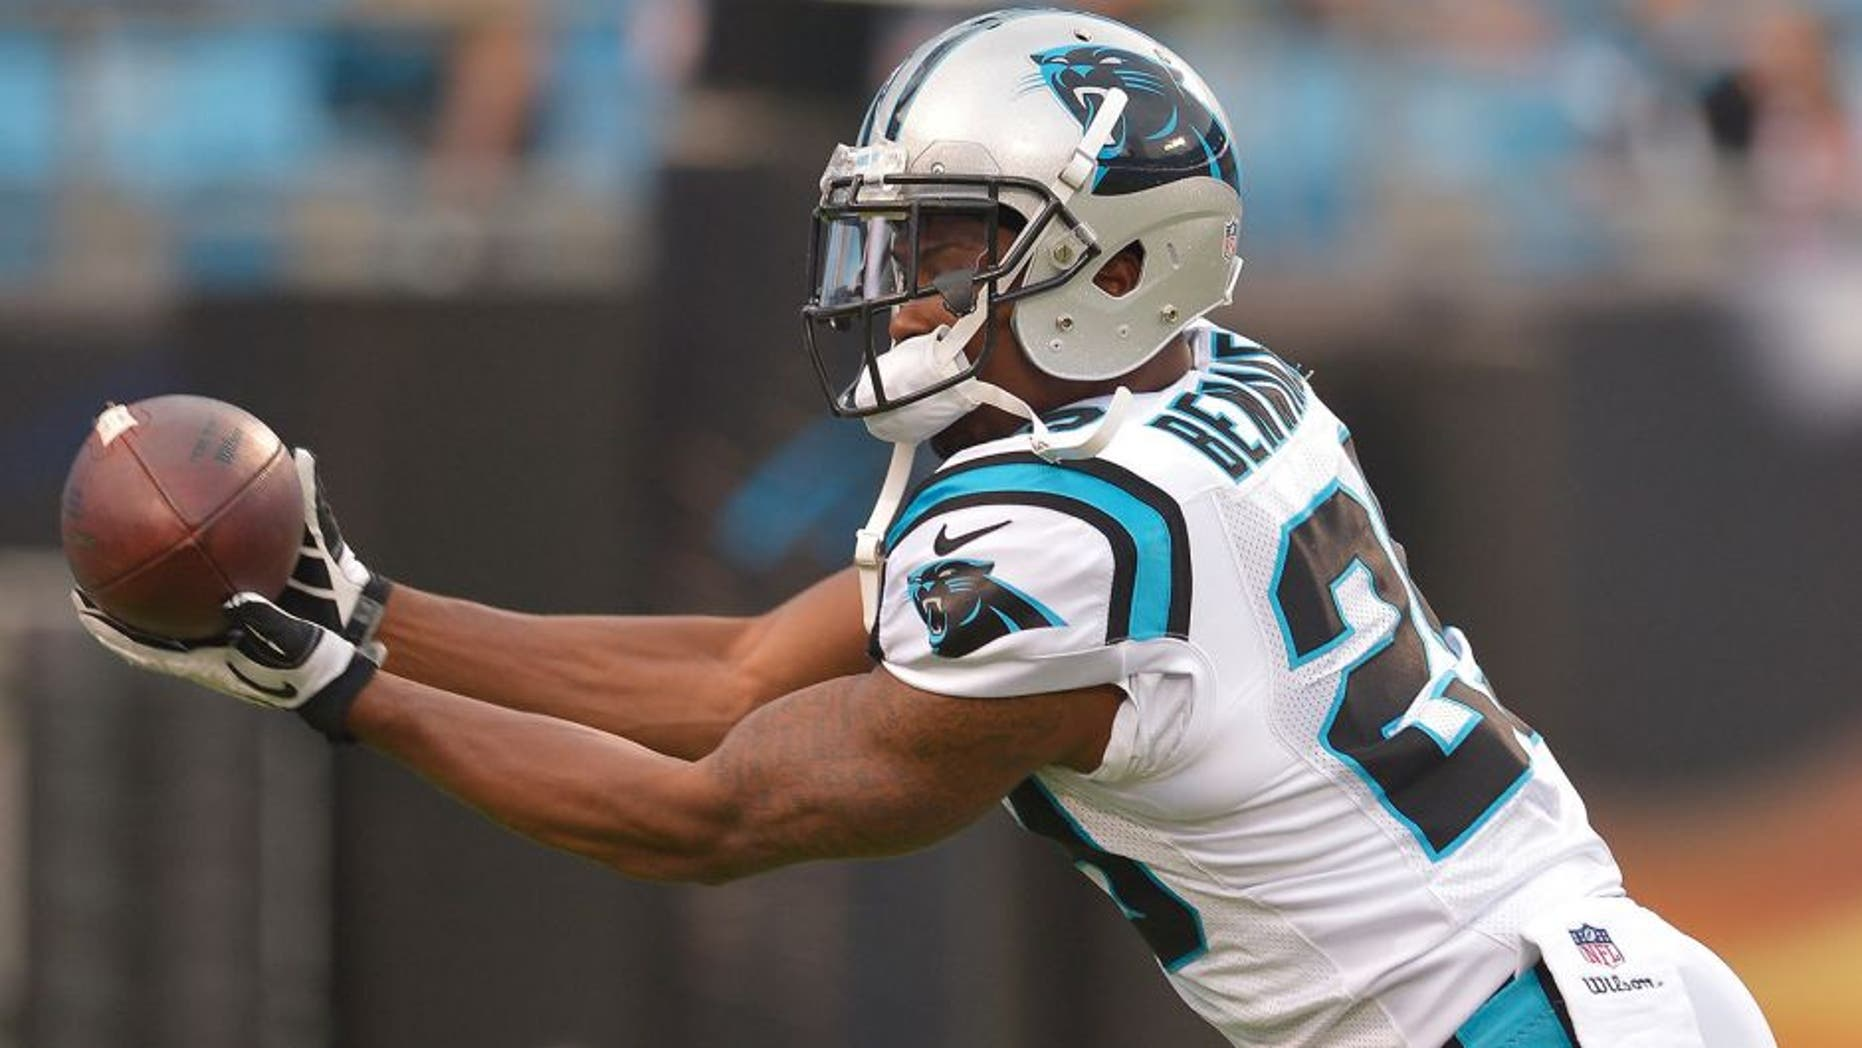 CHARLOTTE, NC - AUGUST 17: Bene Benwikere #29 of the Carolina Panthers against the Kansas City Chiefs during their game at Bank of America Stadium on August 17, 2014 in Charlotte, North Carolina. Carolina won 28-16. (Photo by Grant Halverson/Getty Images) *** Local Caption *** Bene Benwikere